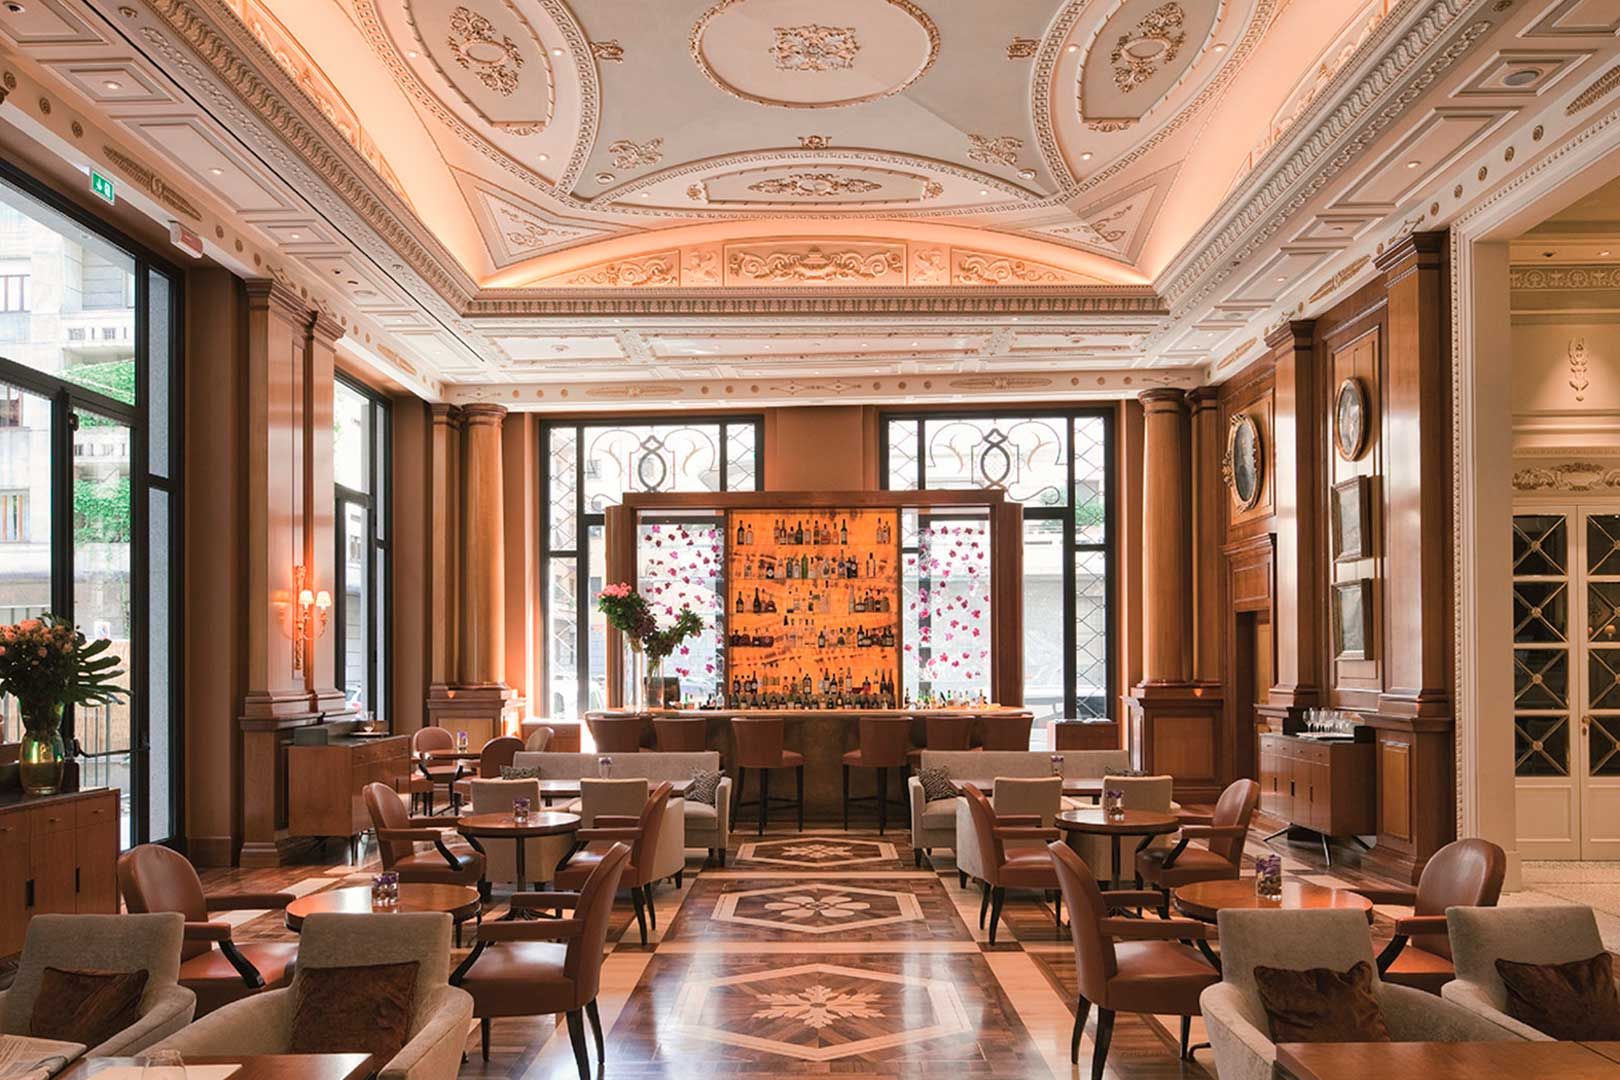 The best tea rooms of Milan